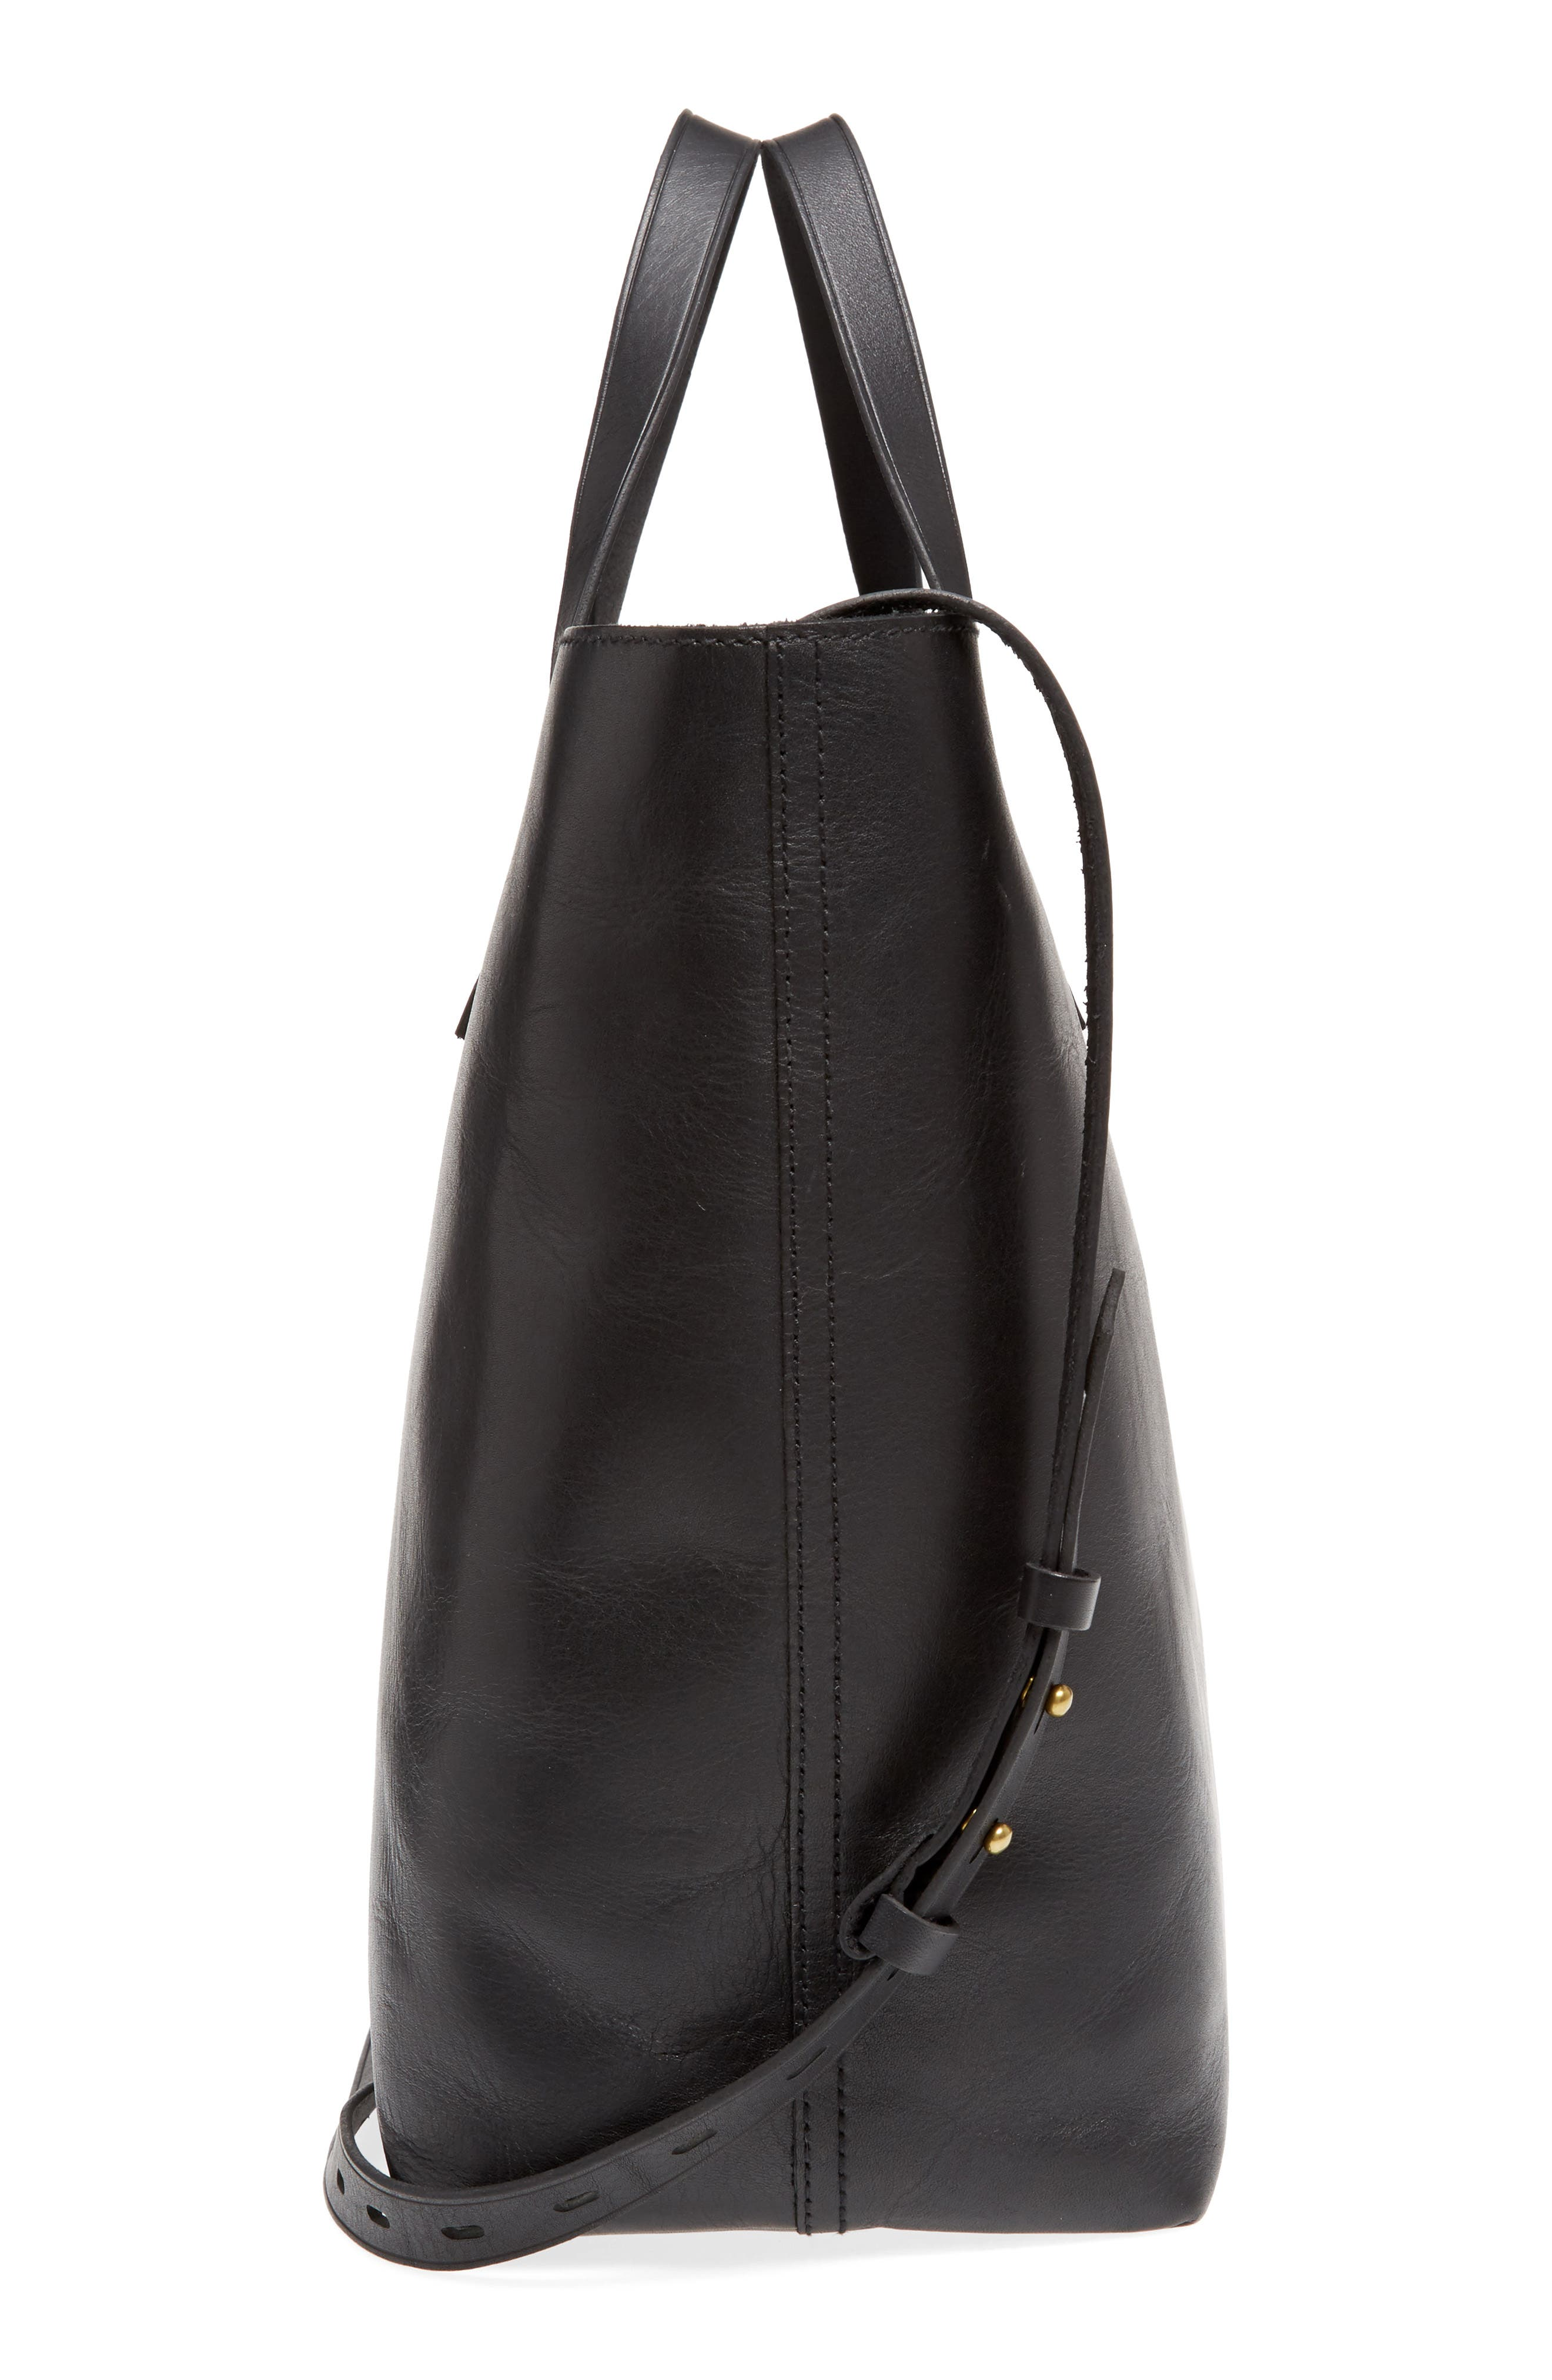 MADEWELL, Zip Top Transport Leather Carryall, Alternate thumbnail 6, color, TRUE BLACK